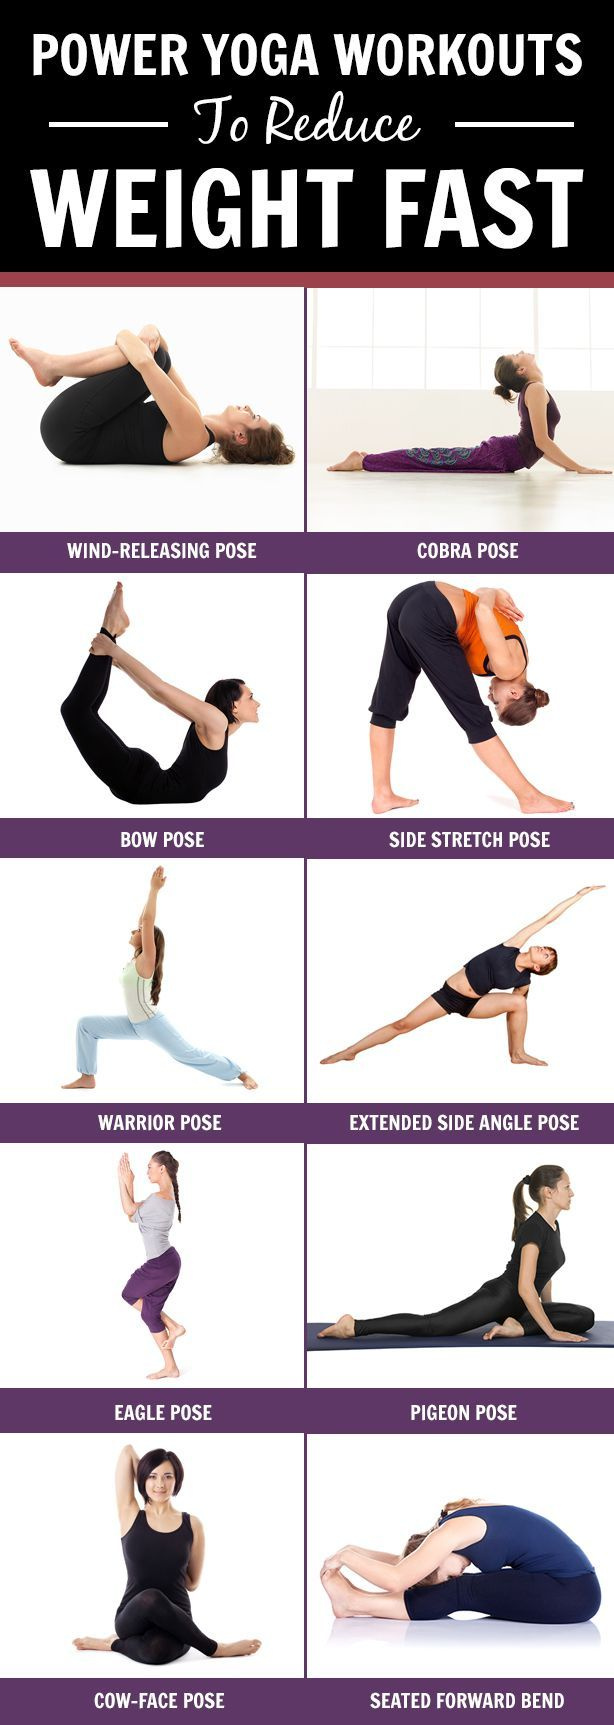 parvatasana yoga steps to lose weight